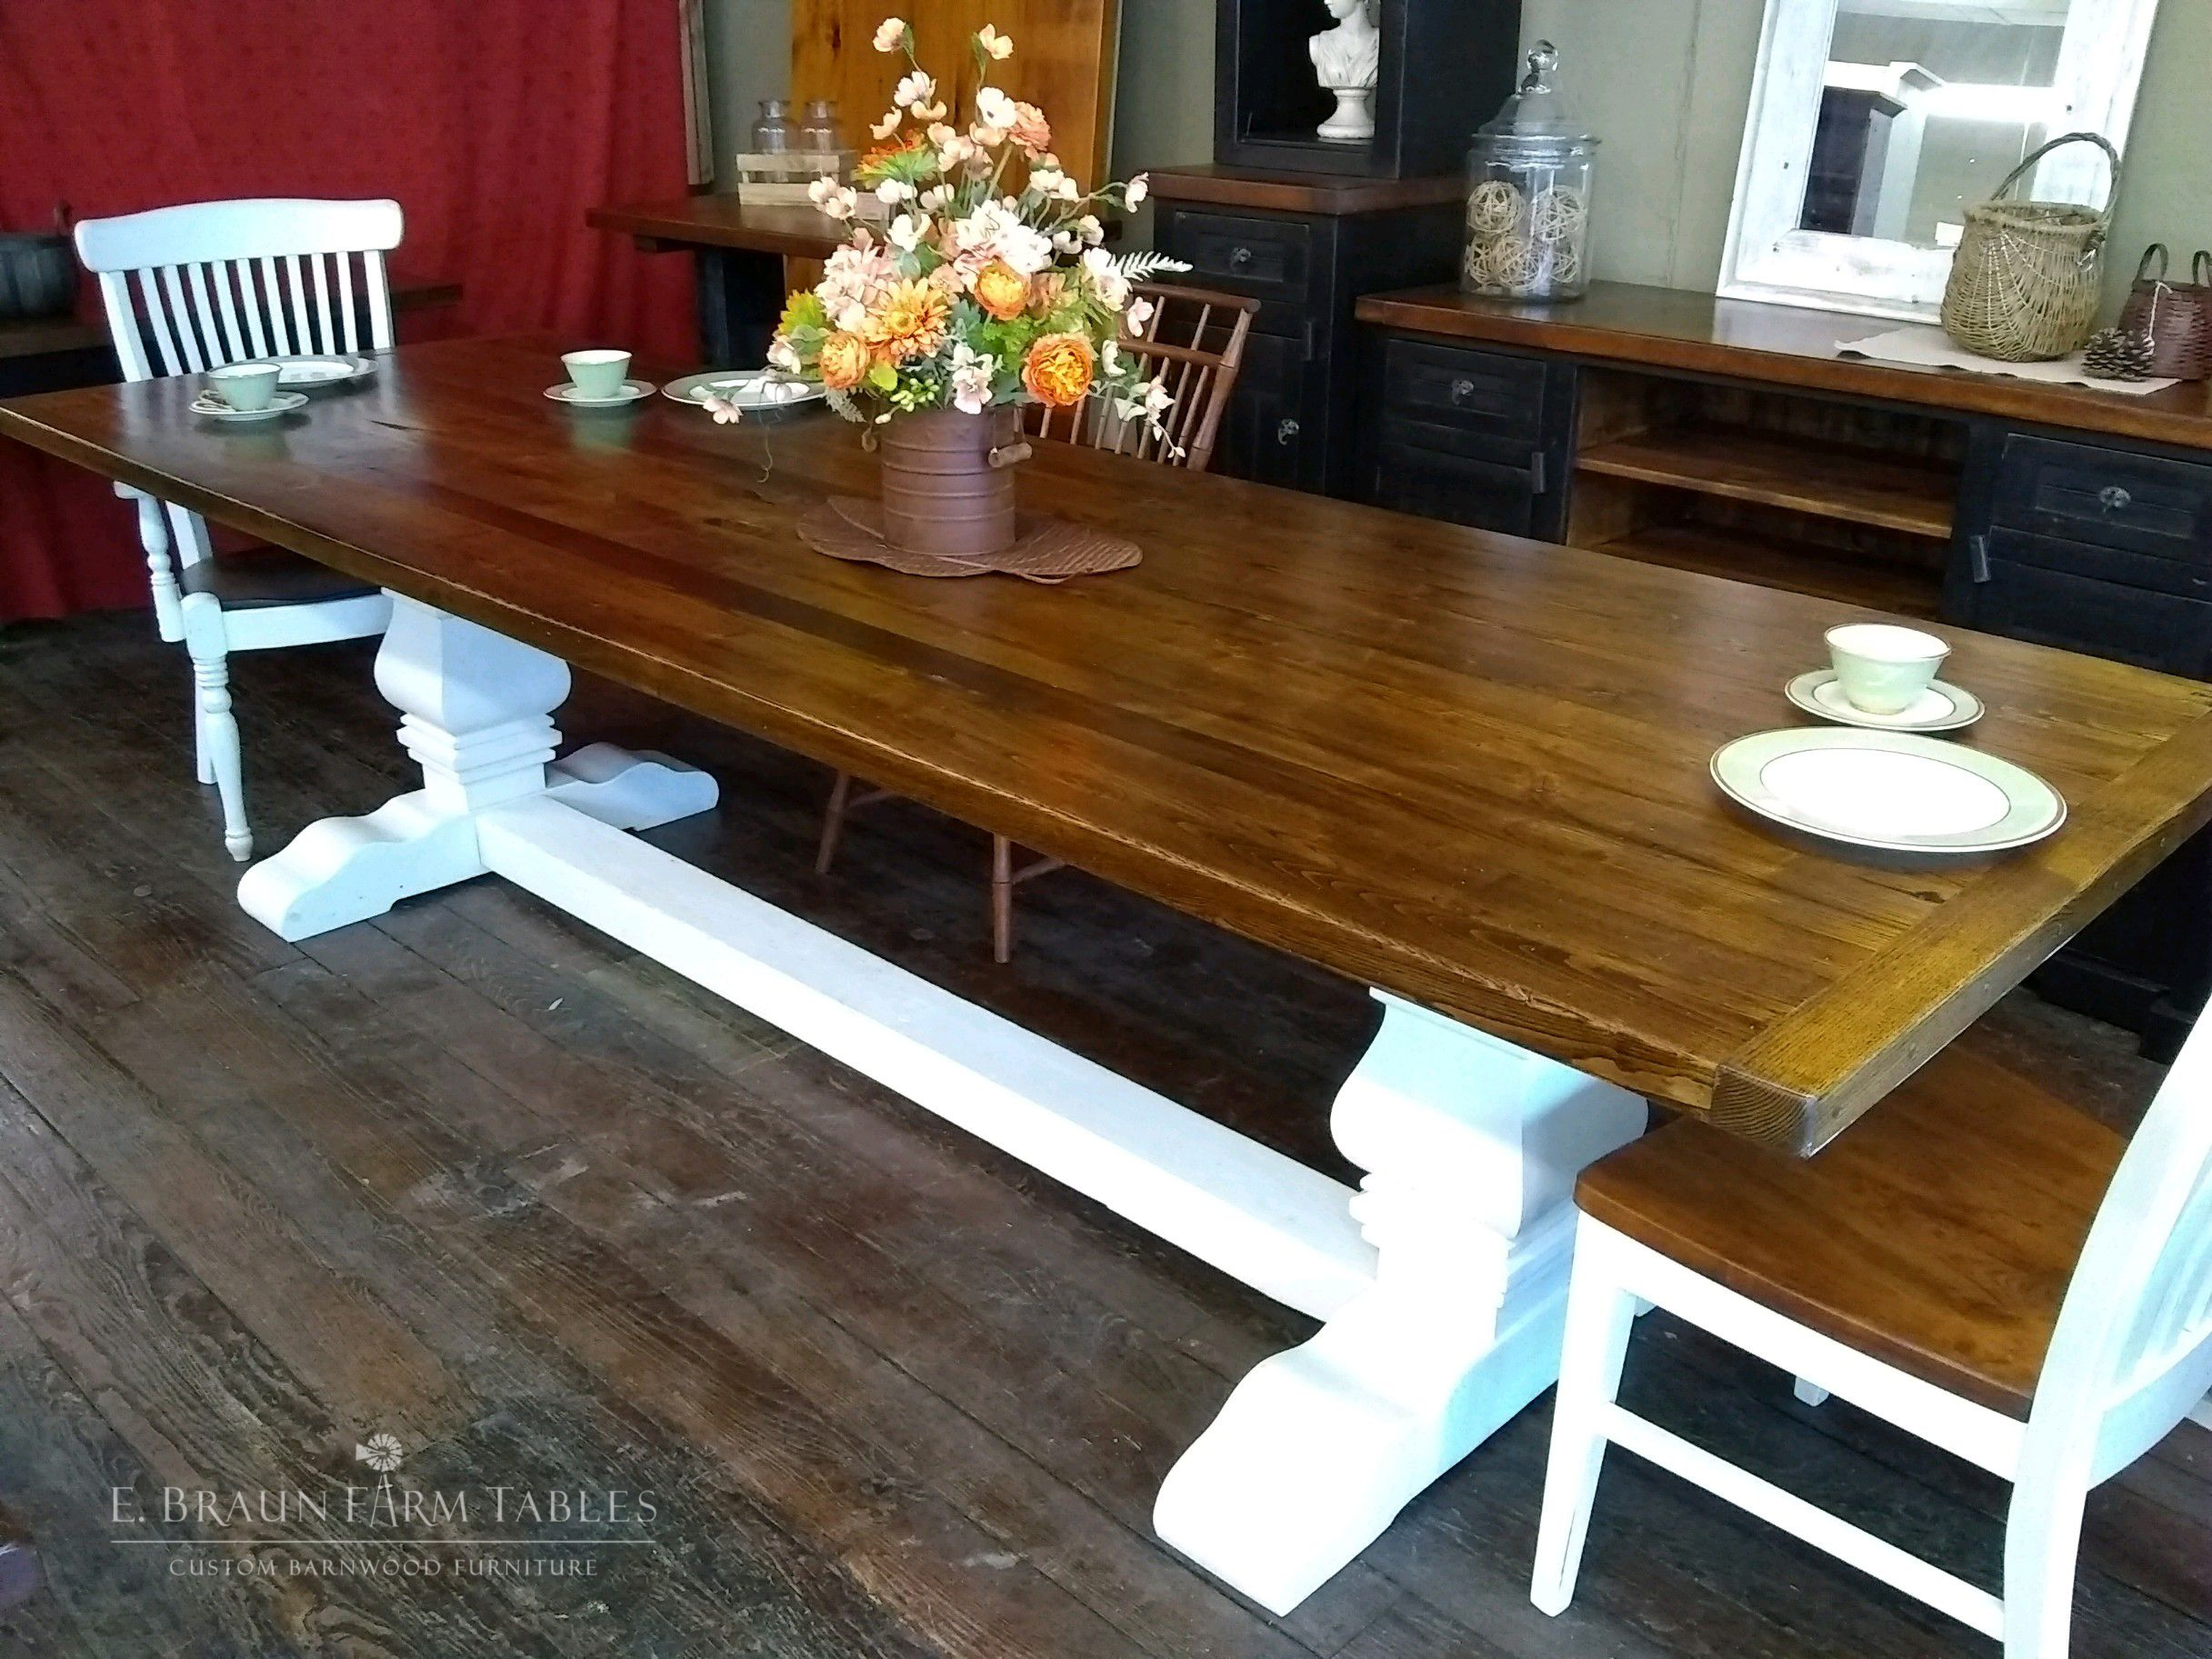 Pin On Large Tables Big Tables Long Tables Farm Tables